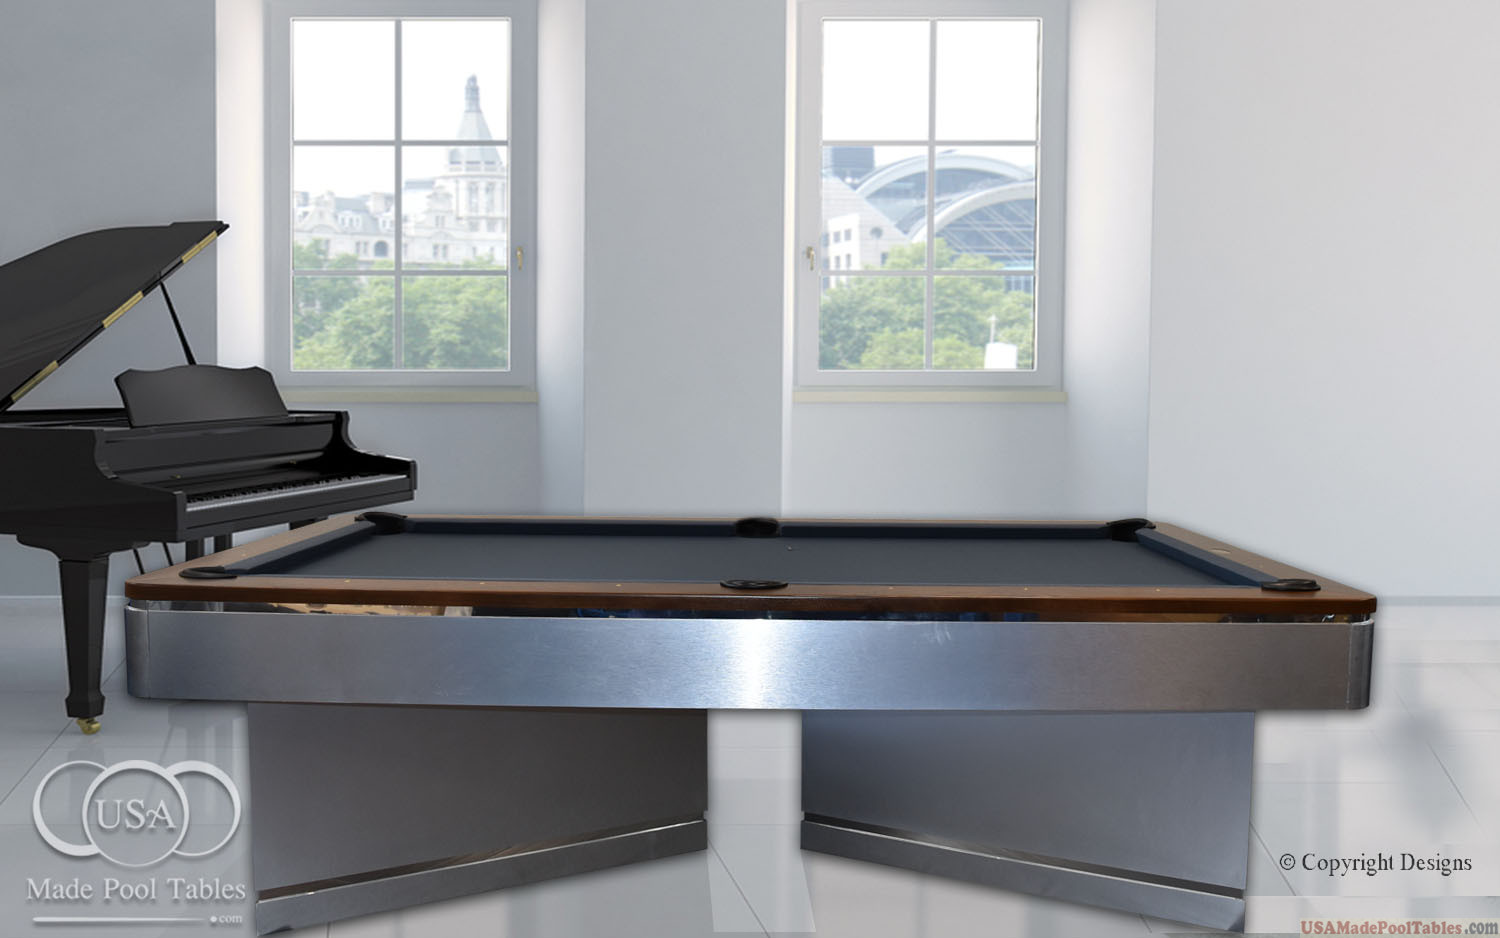 Marvelous Andromeda Contemporary Pool Table Pool Tables For Sale Home Interior And Landscaping Sapresignezvosmurscom